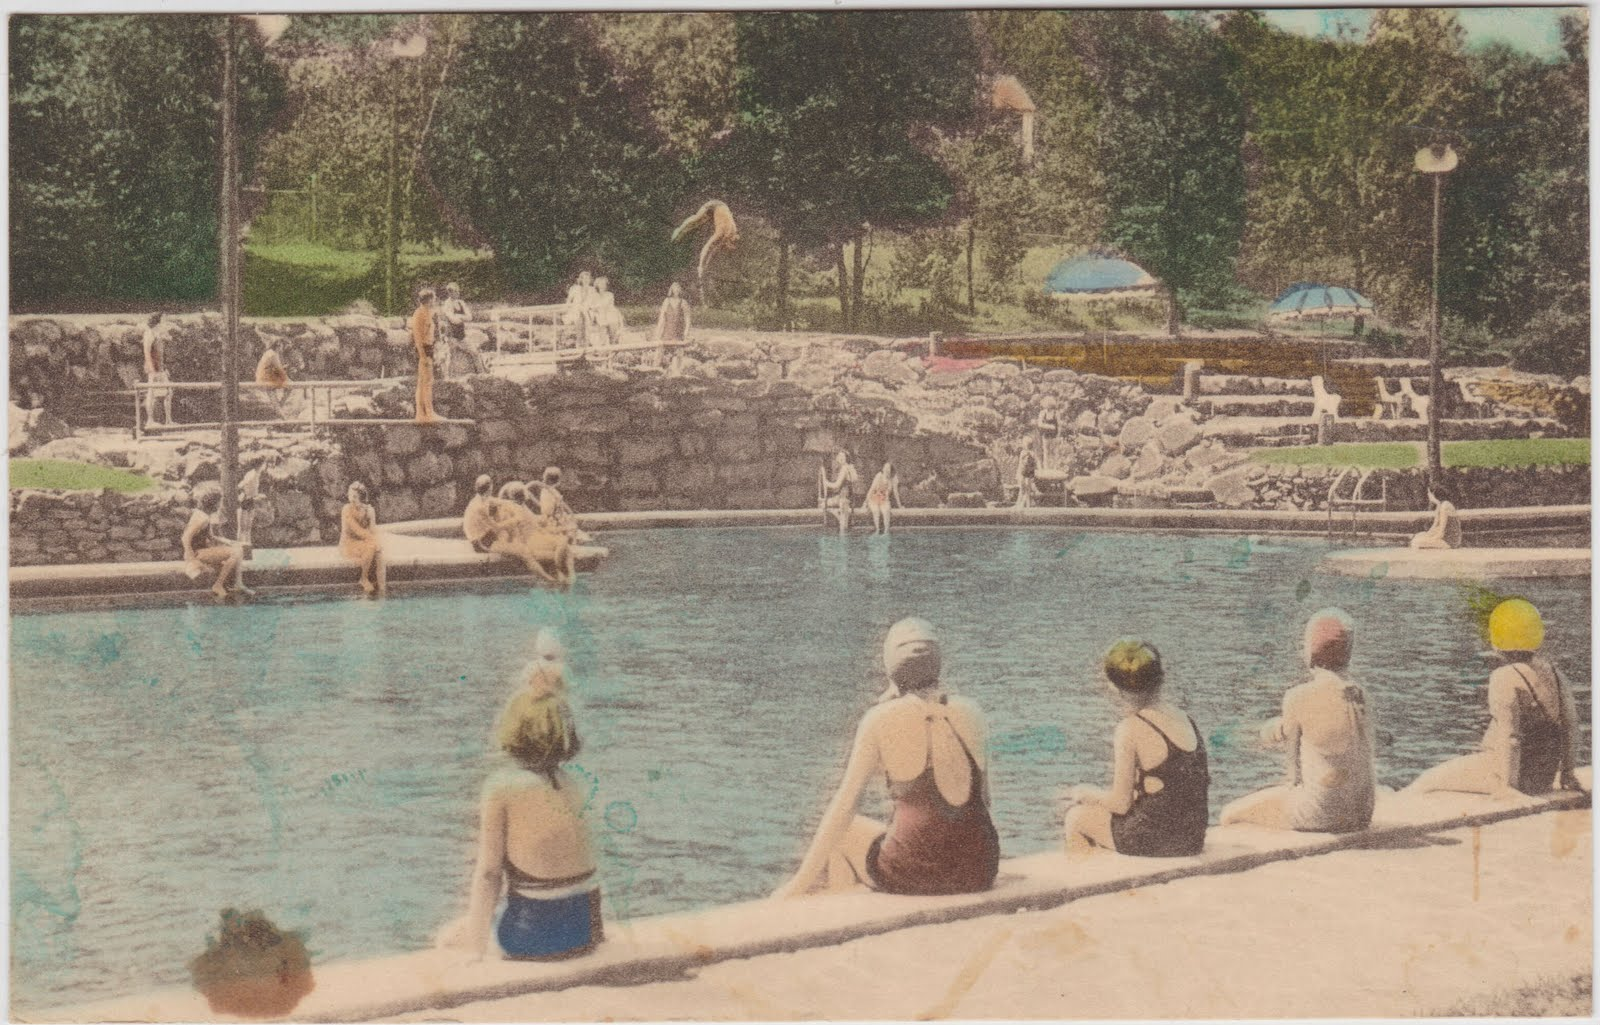 The Olympic size swimming pool at the Buck Hill Inn.